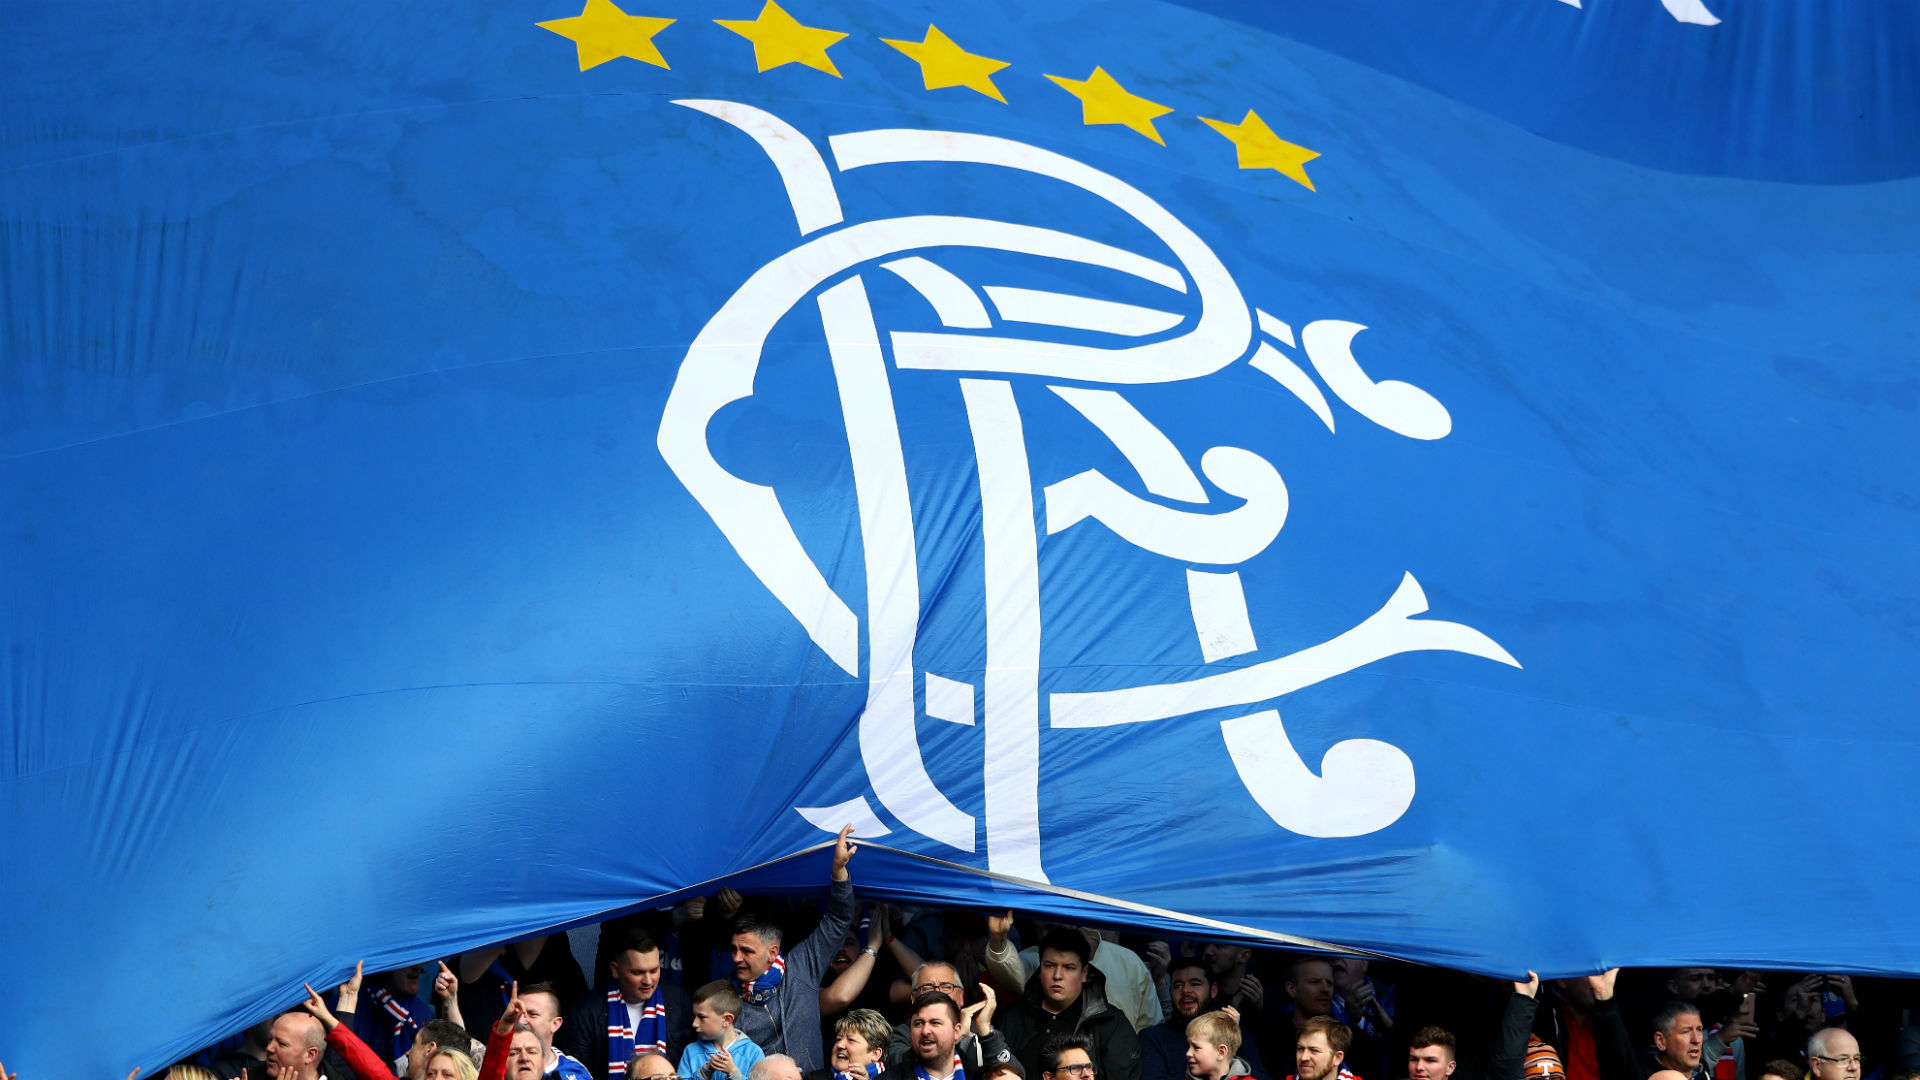 Rangers chants: Lyrics & videos to the most popular Ibrox